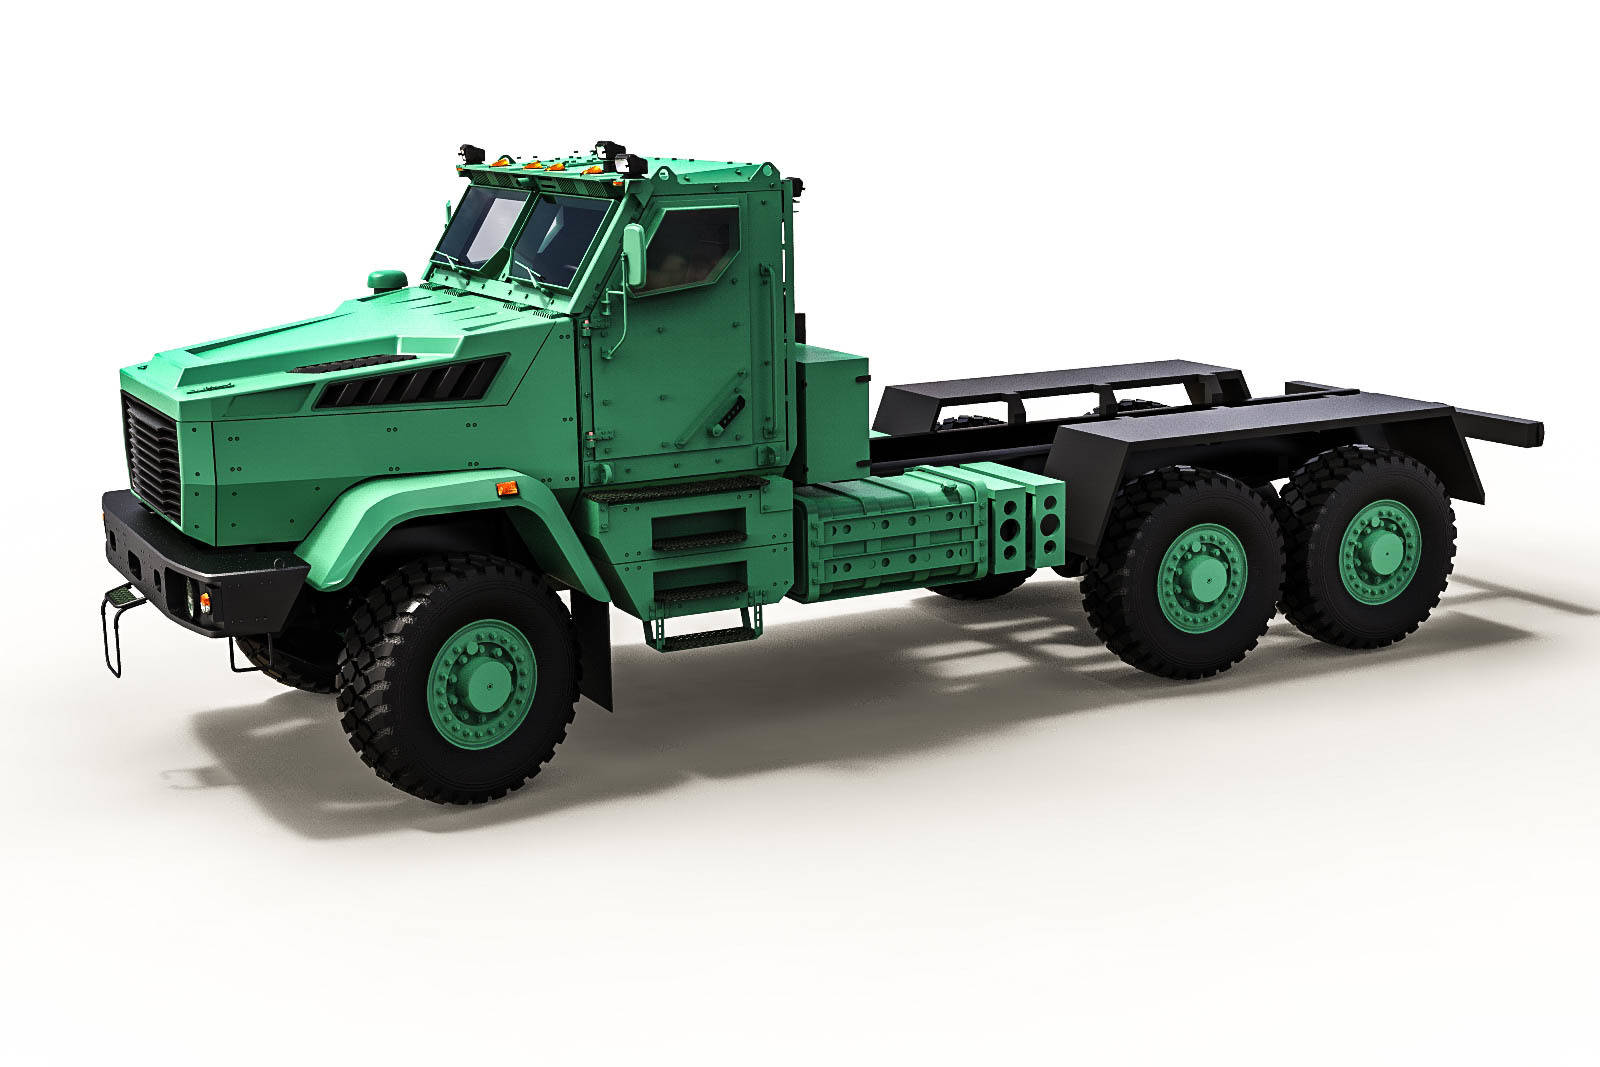 Concept Military truck